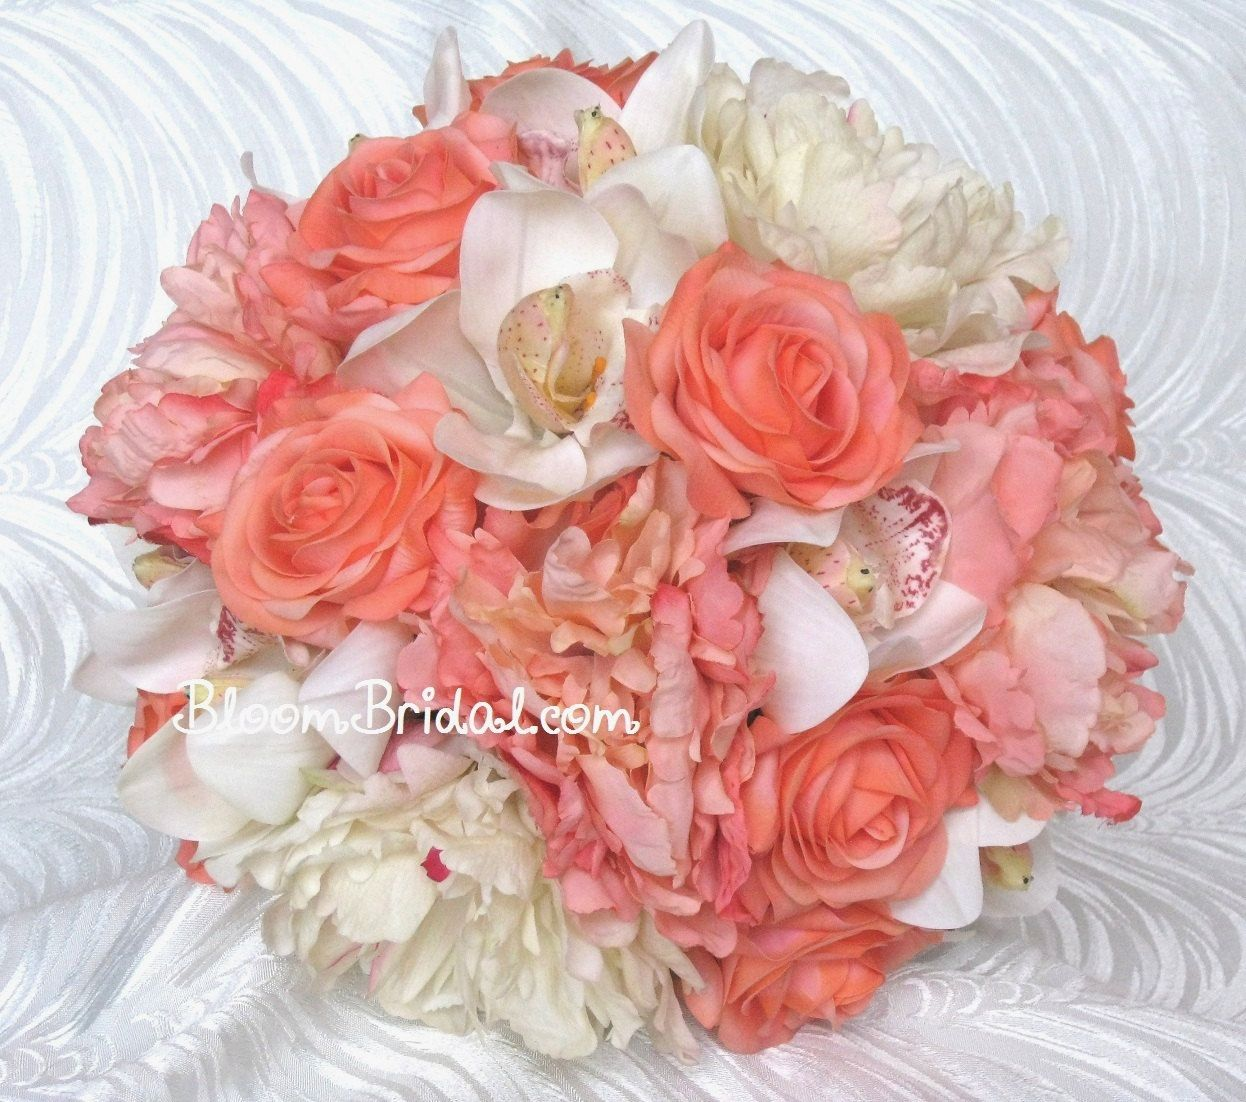 Peony Inspired Wedding Ideas: Peach Coral & Cream Orchids, Roses, And Peonies Bouquet